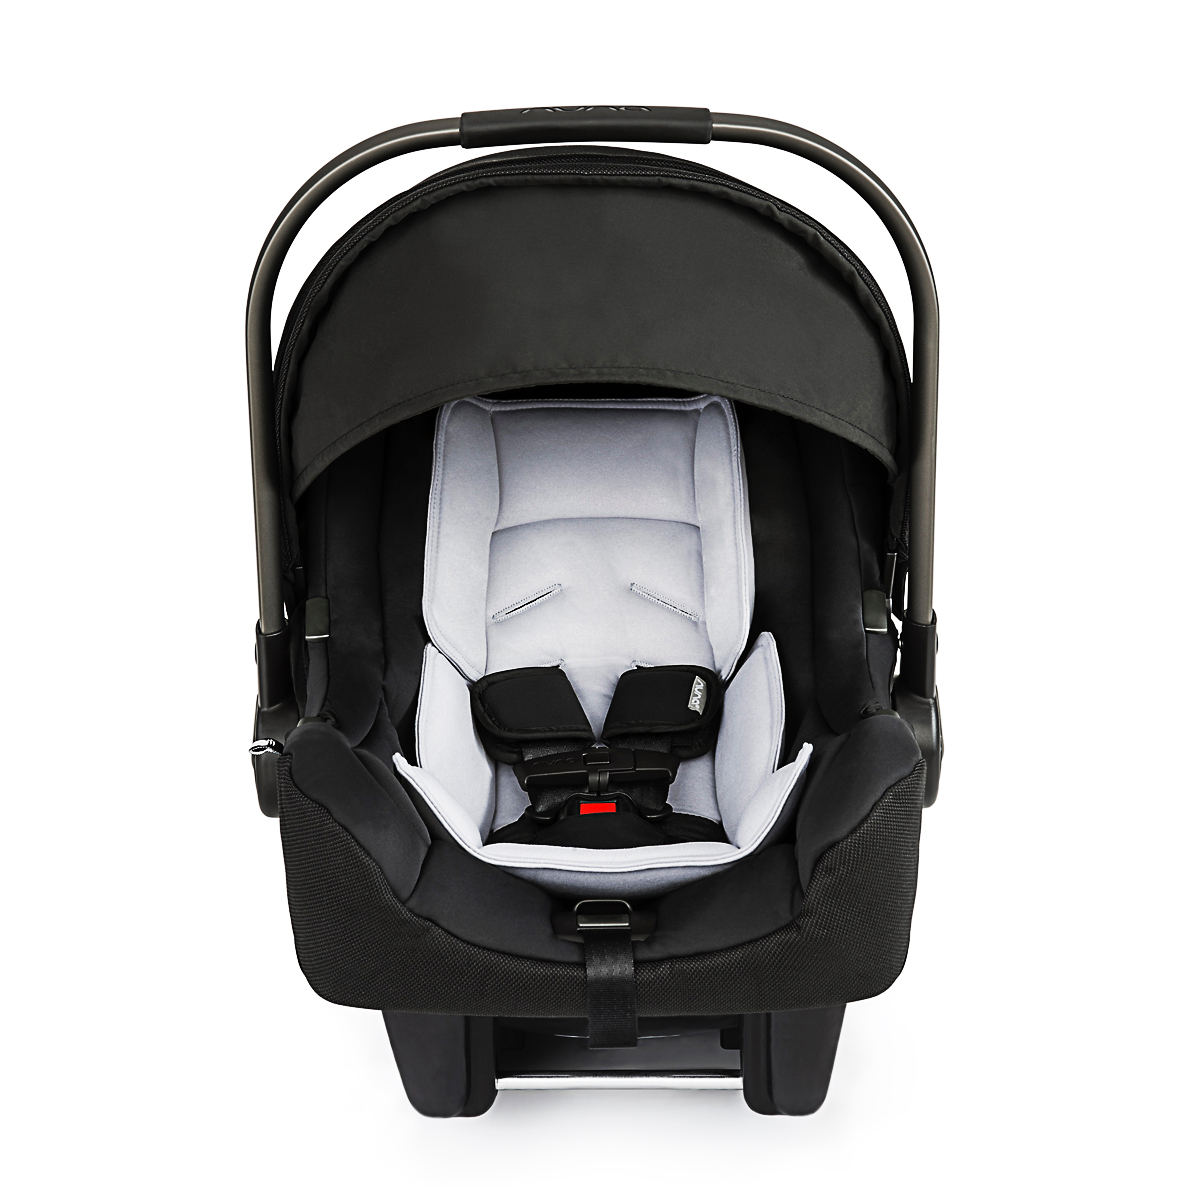 nuna pipa car seat and base set thetot. Black Bedroom Furniture Sets. Home Design Ideas